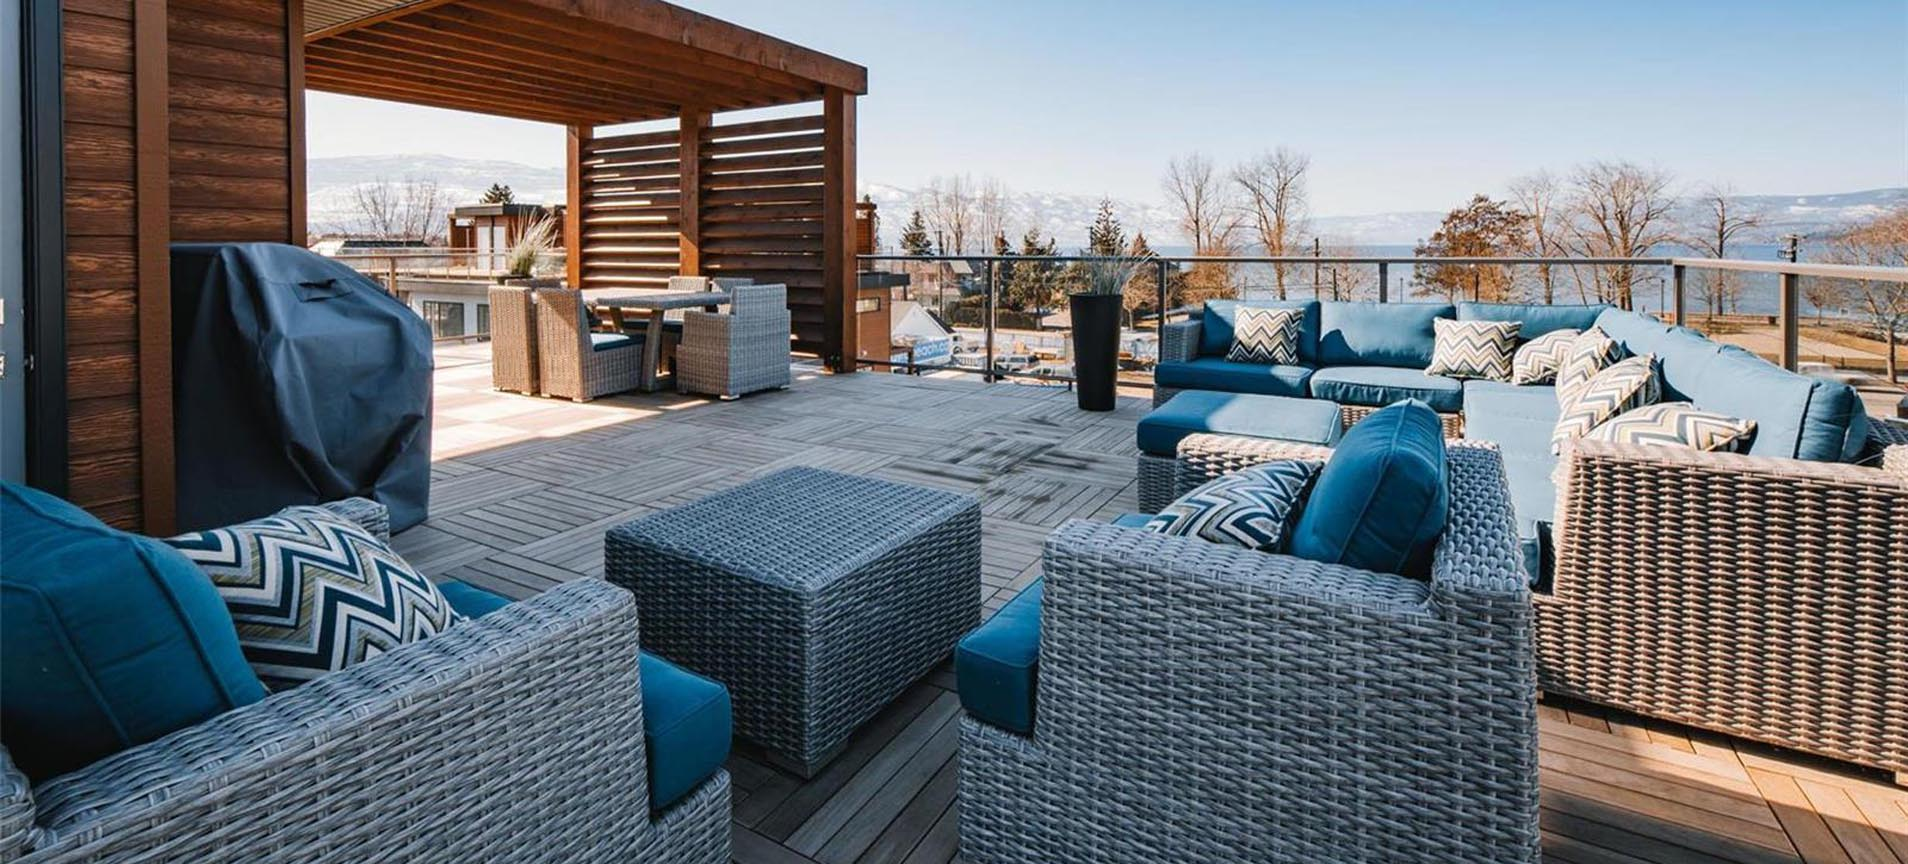 How to Seal Your Ipe Wood Deck